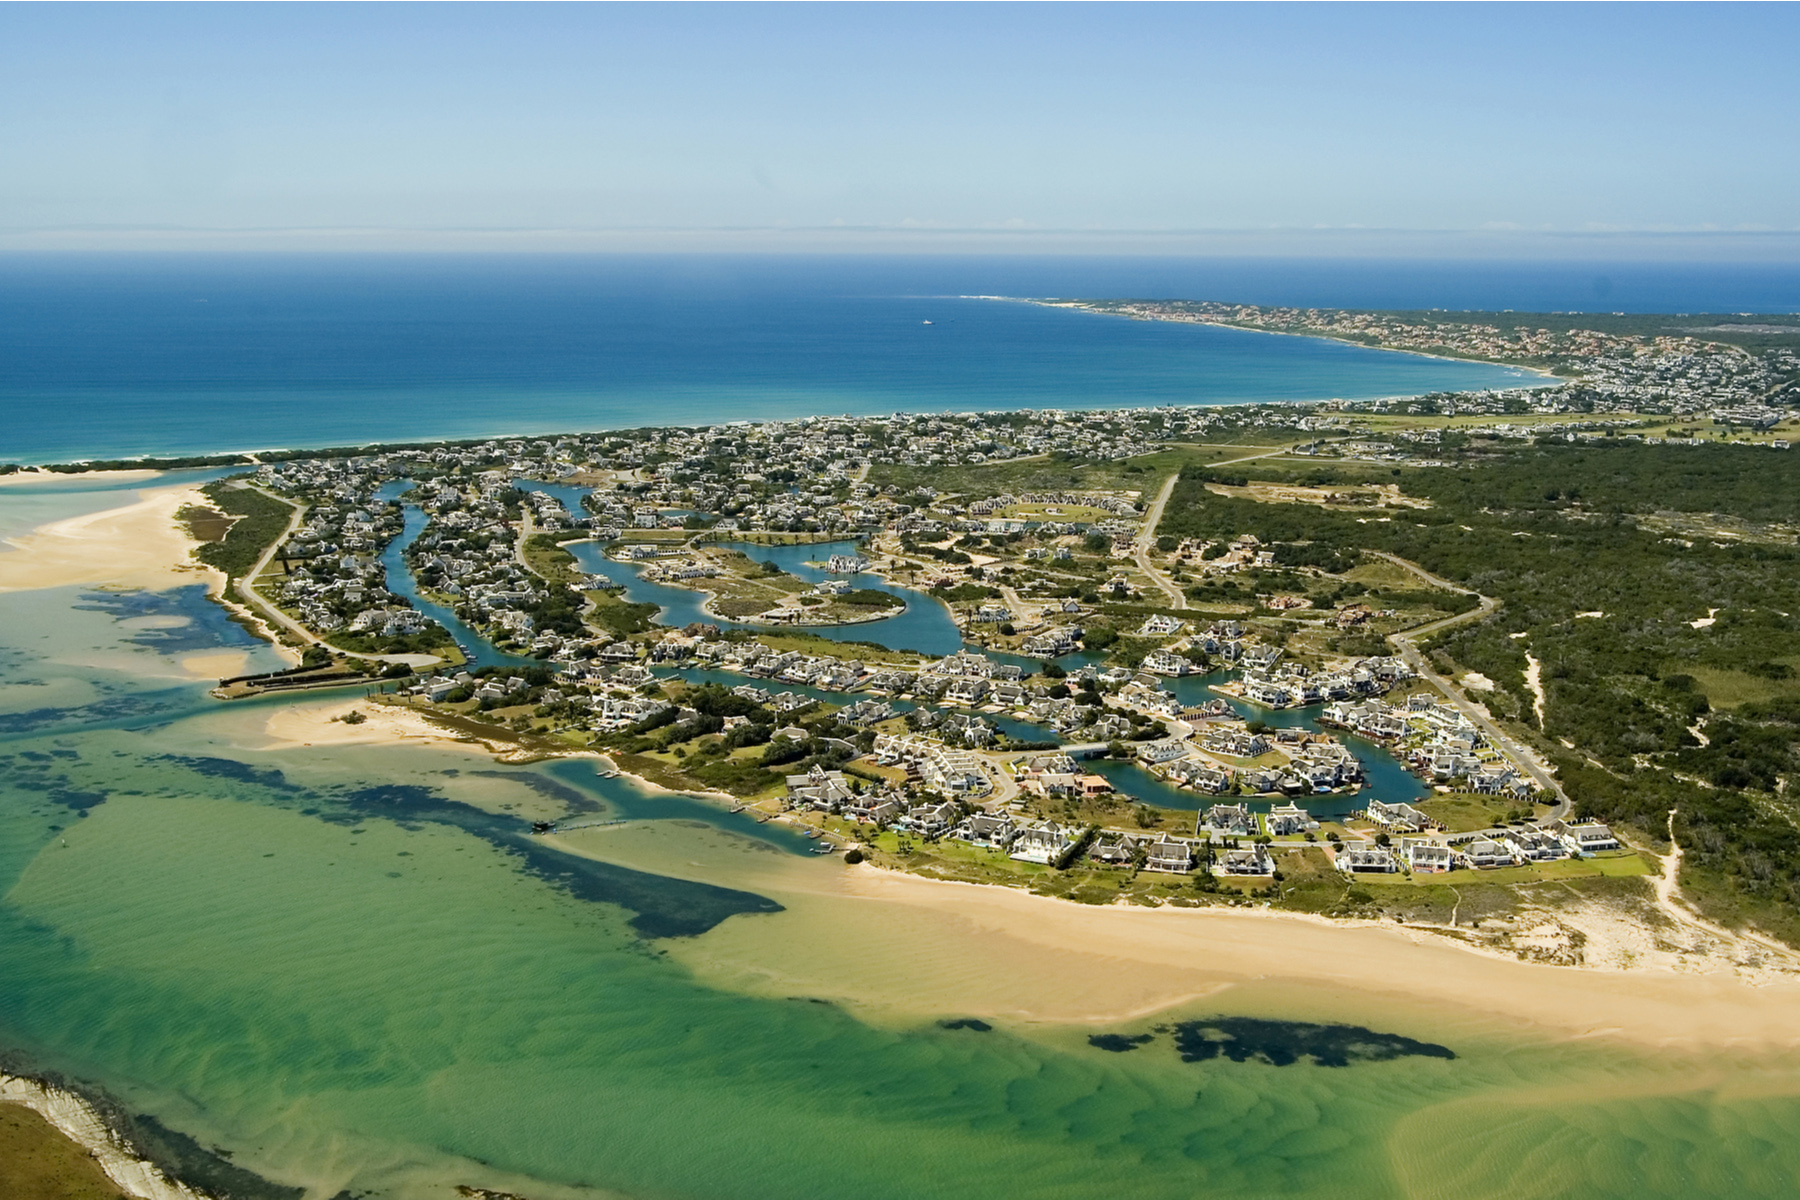 St. Francis Bay in South Africa